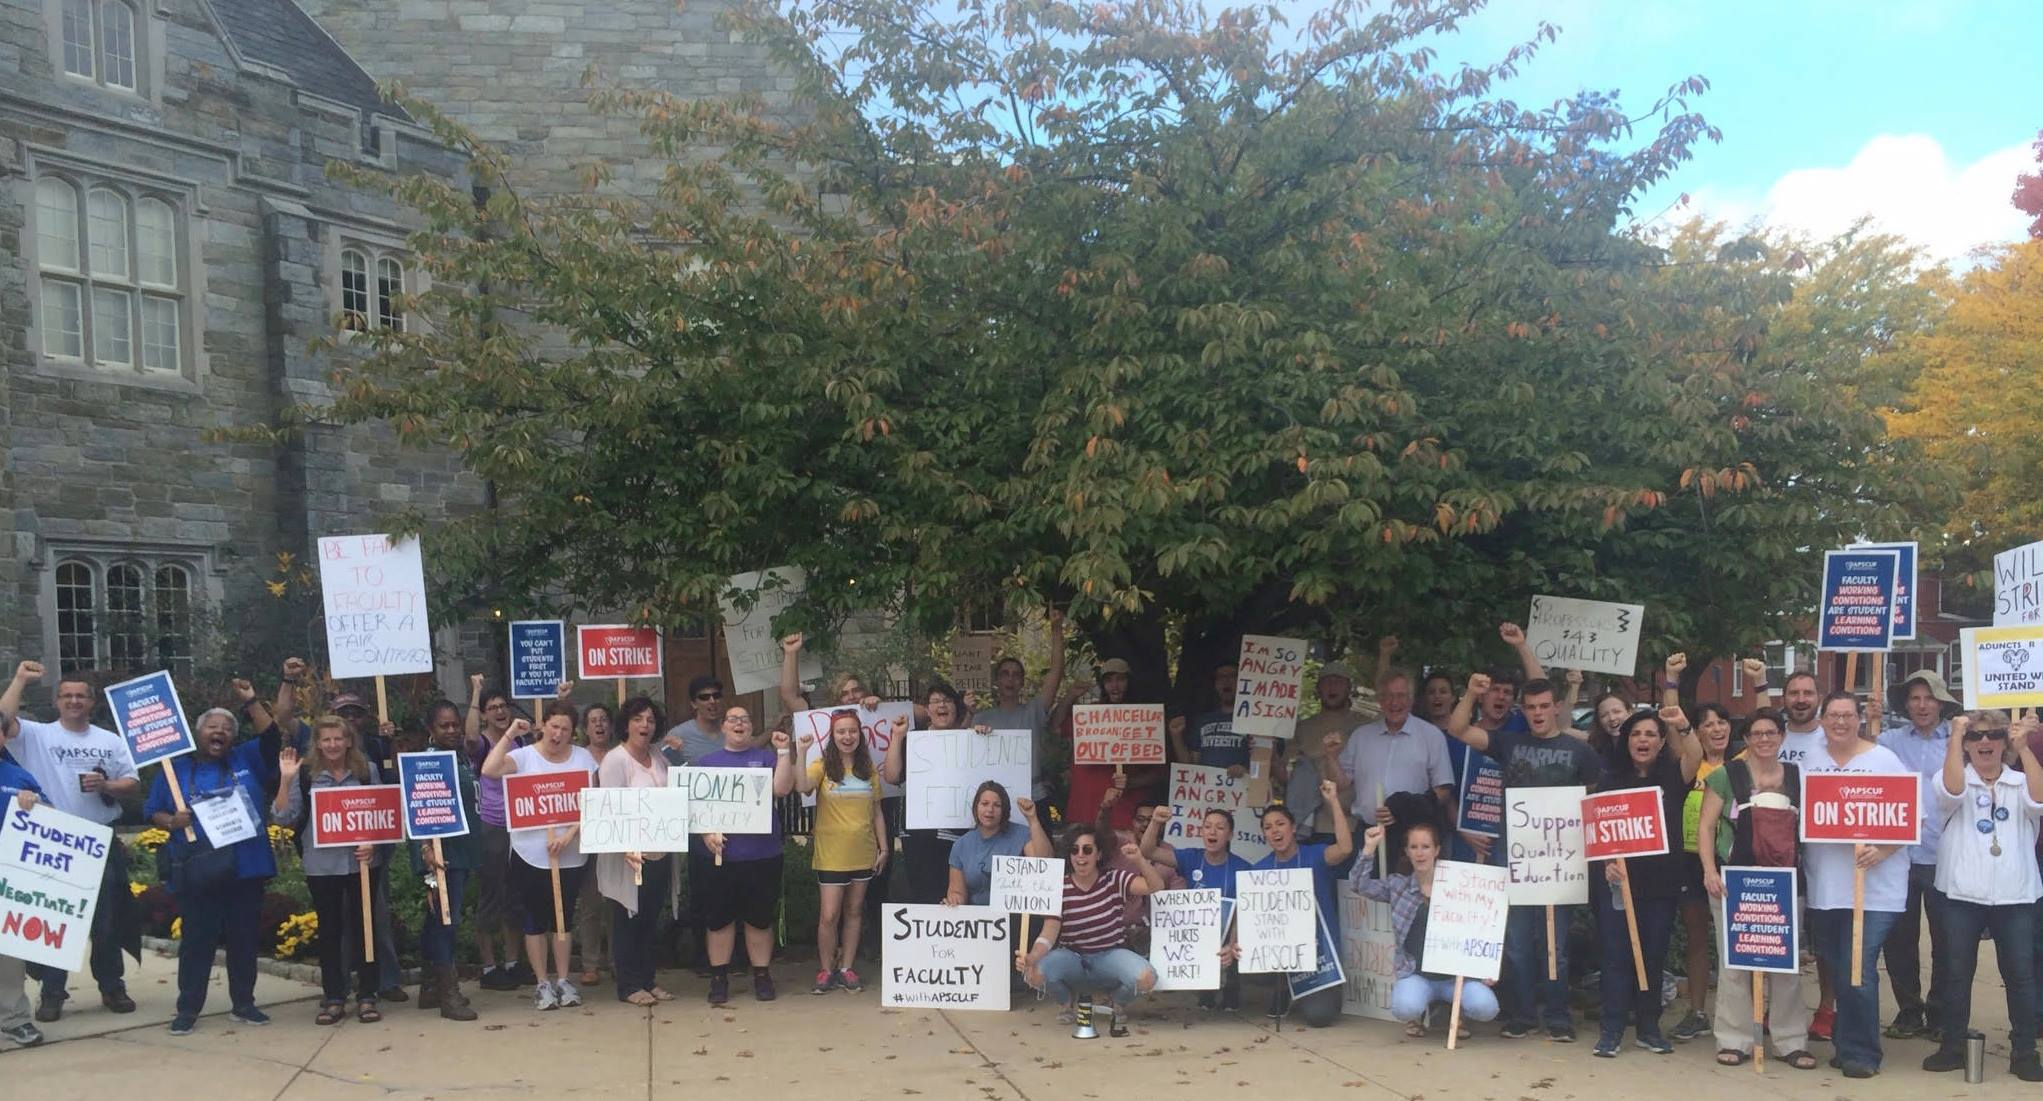 Photo of Eyewitness: Students help Pa. faculty union win strike battle